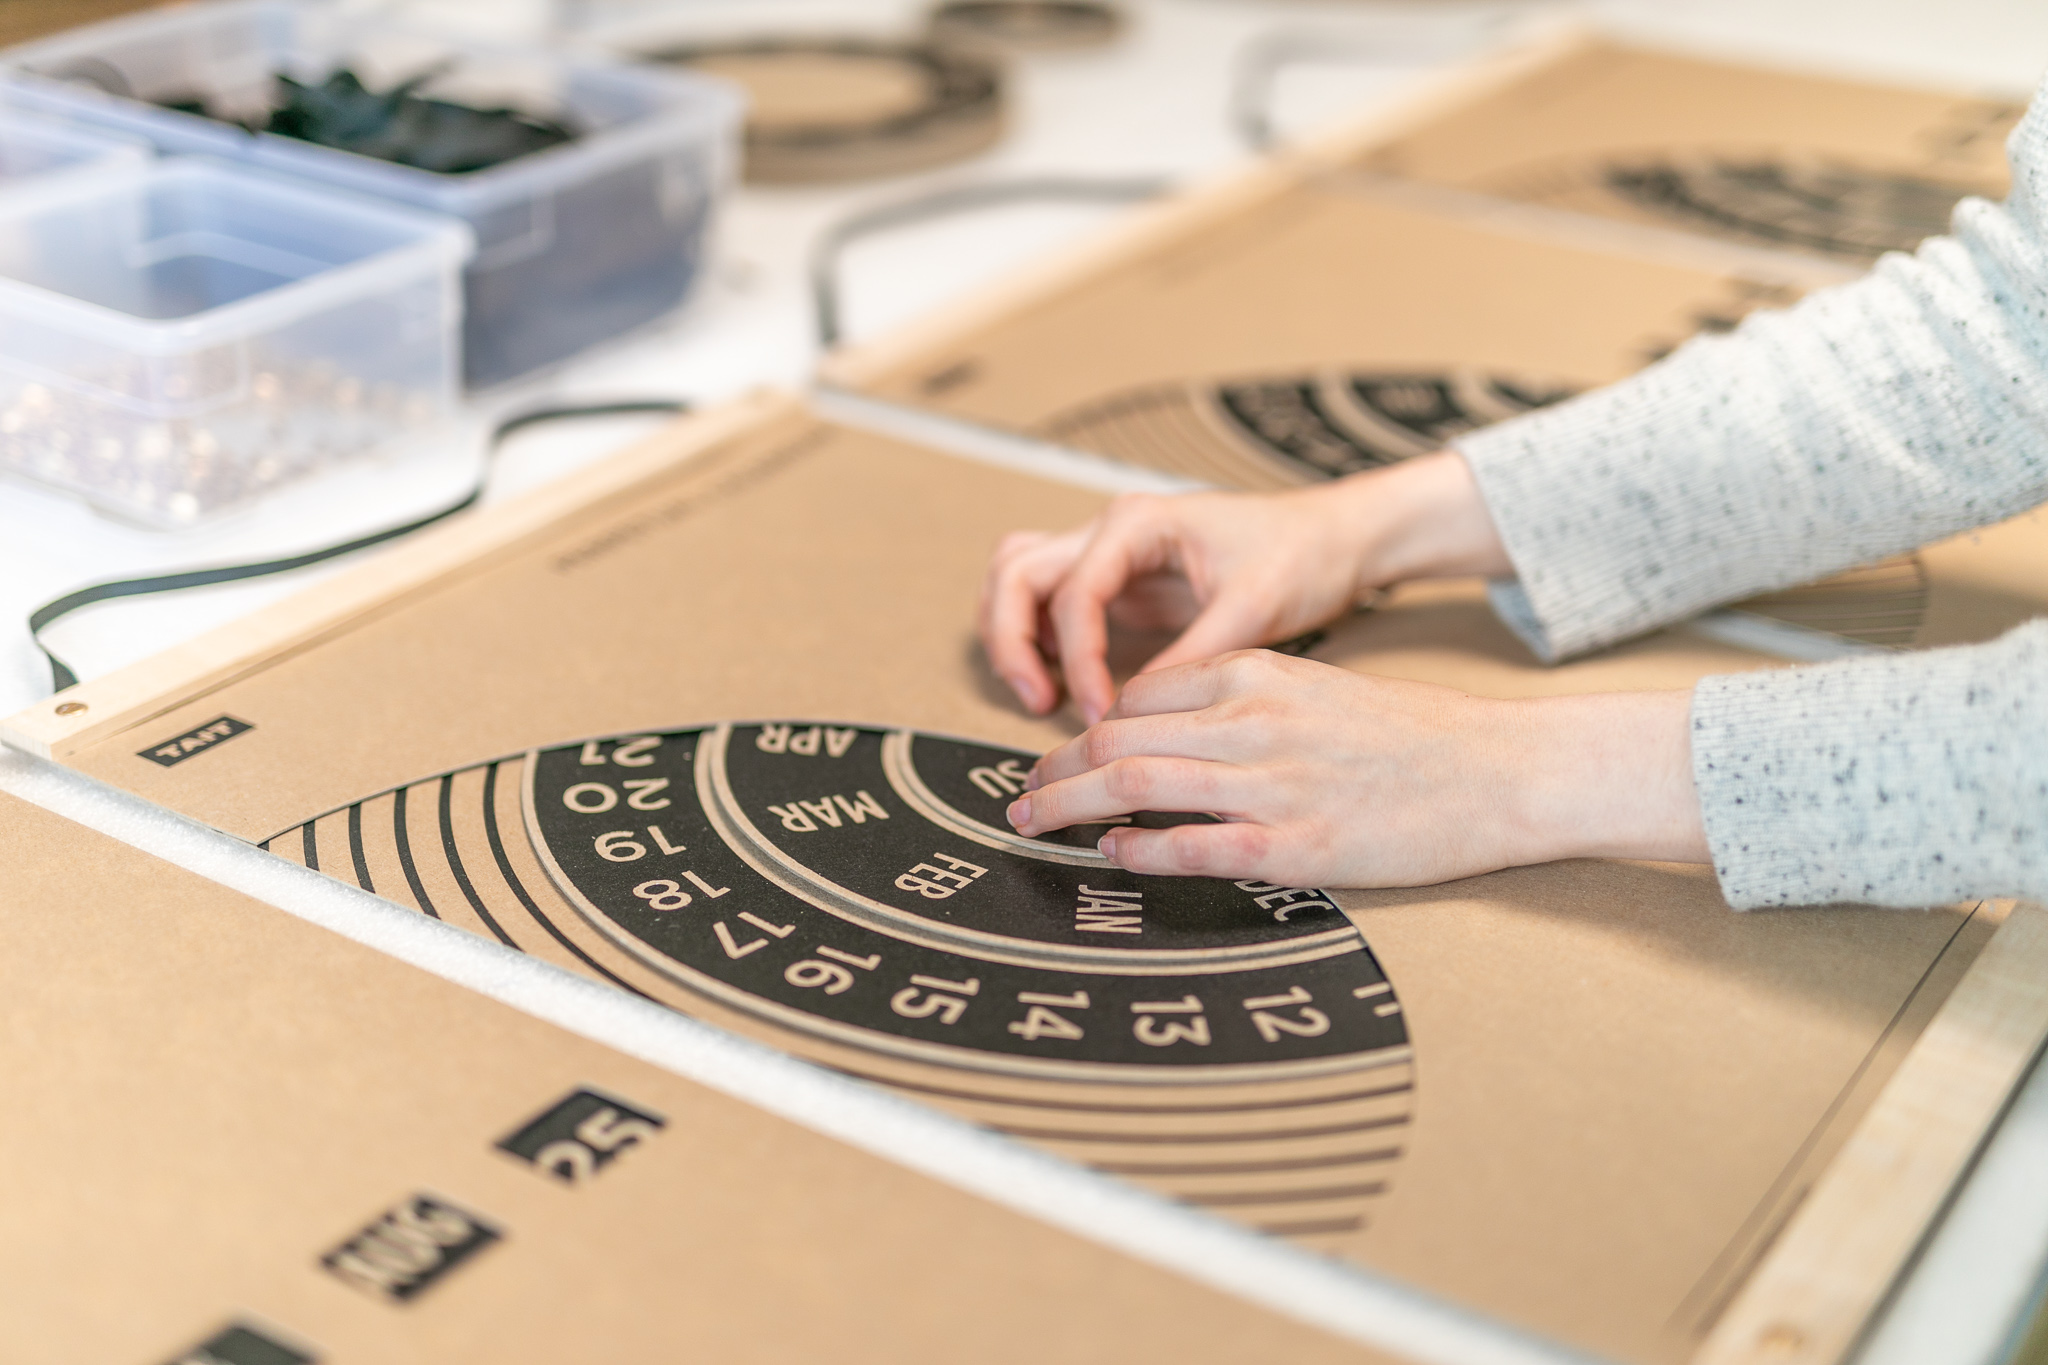 THE ASSEMBLY - –ALL DONE BY HAND–All of the materials from around the US arrive at our studio in Detroit, where they are assembled by hand. Our in-house production team oversees all quality control here as well.